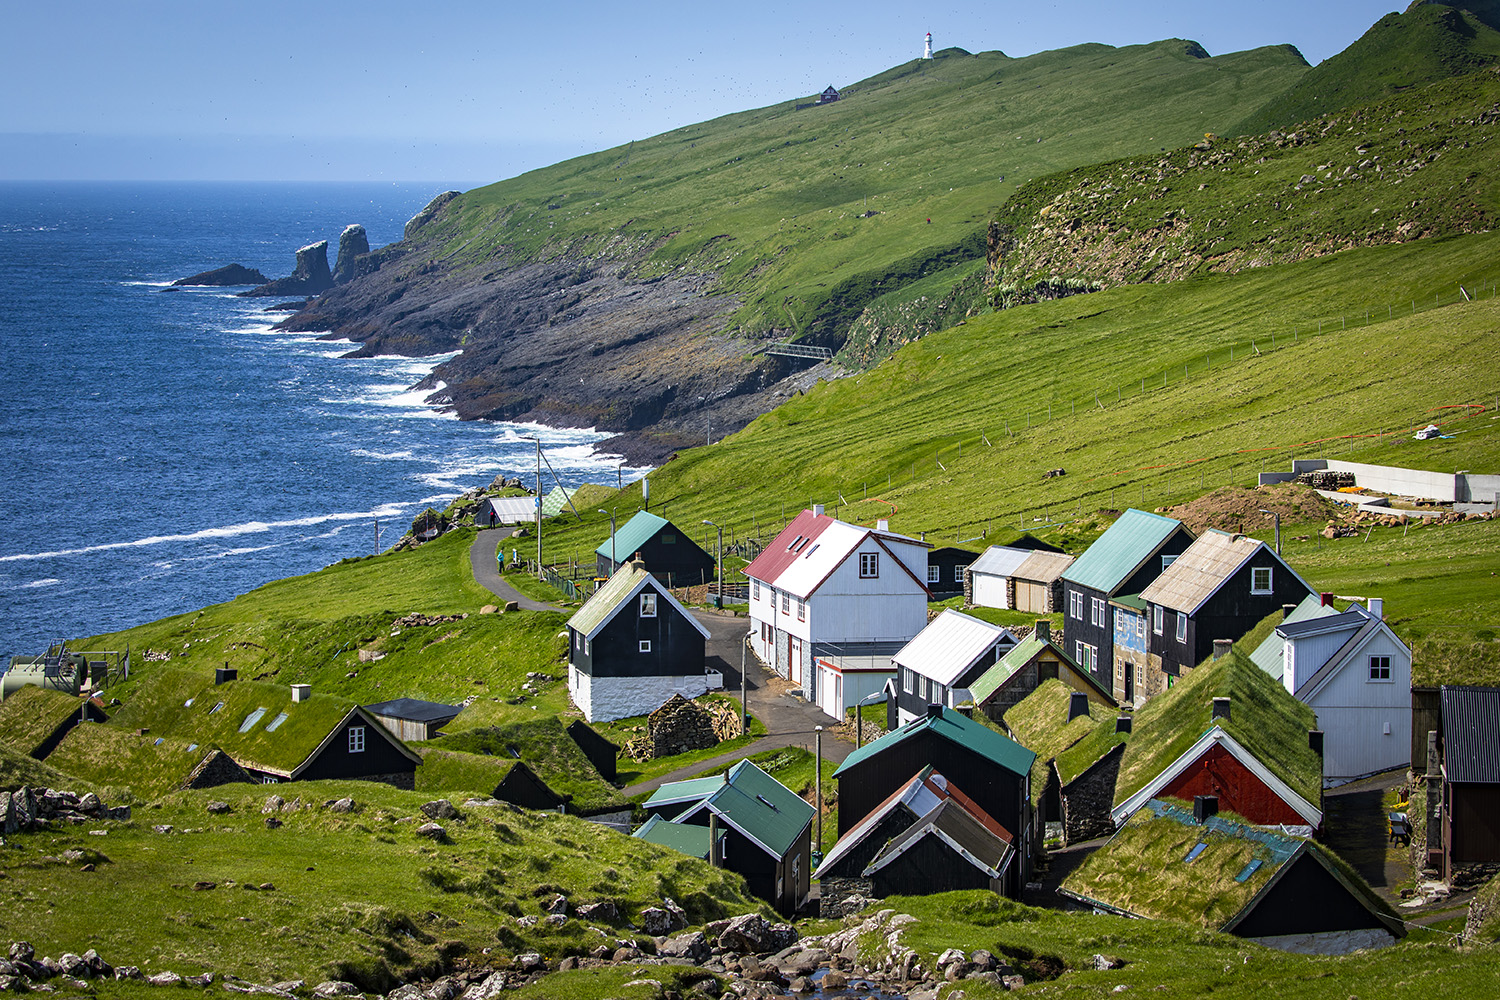 The village of Mykines, Faroe Islands